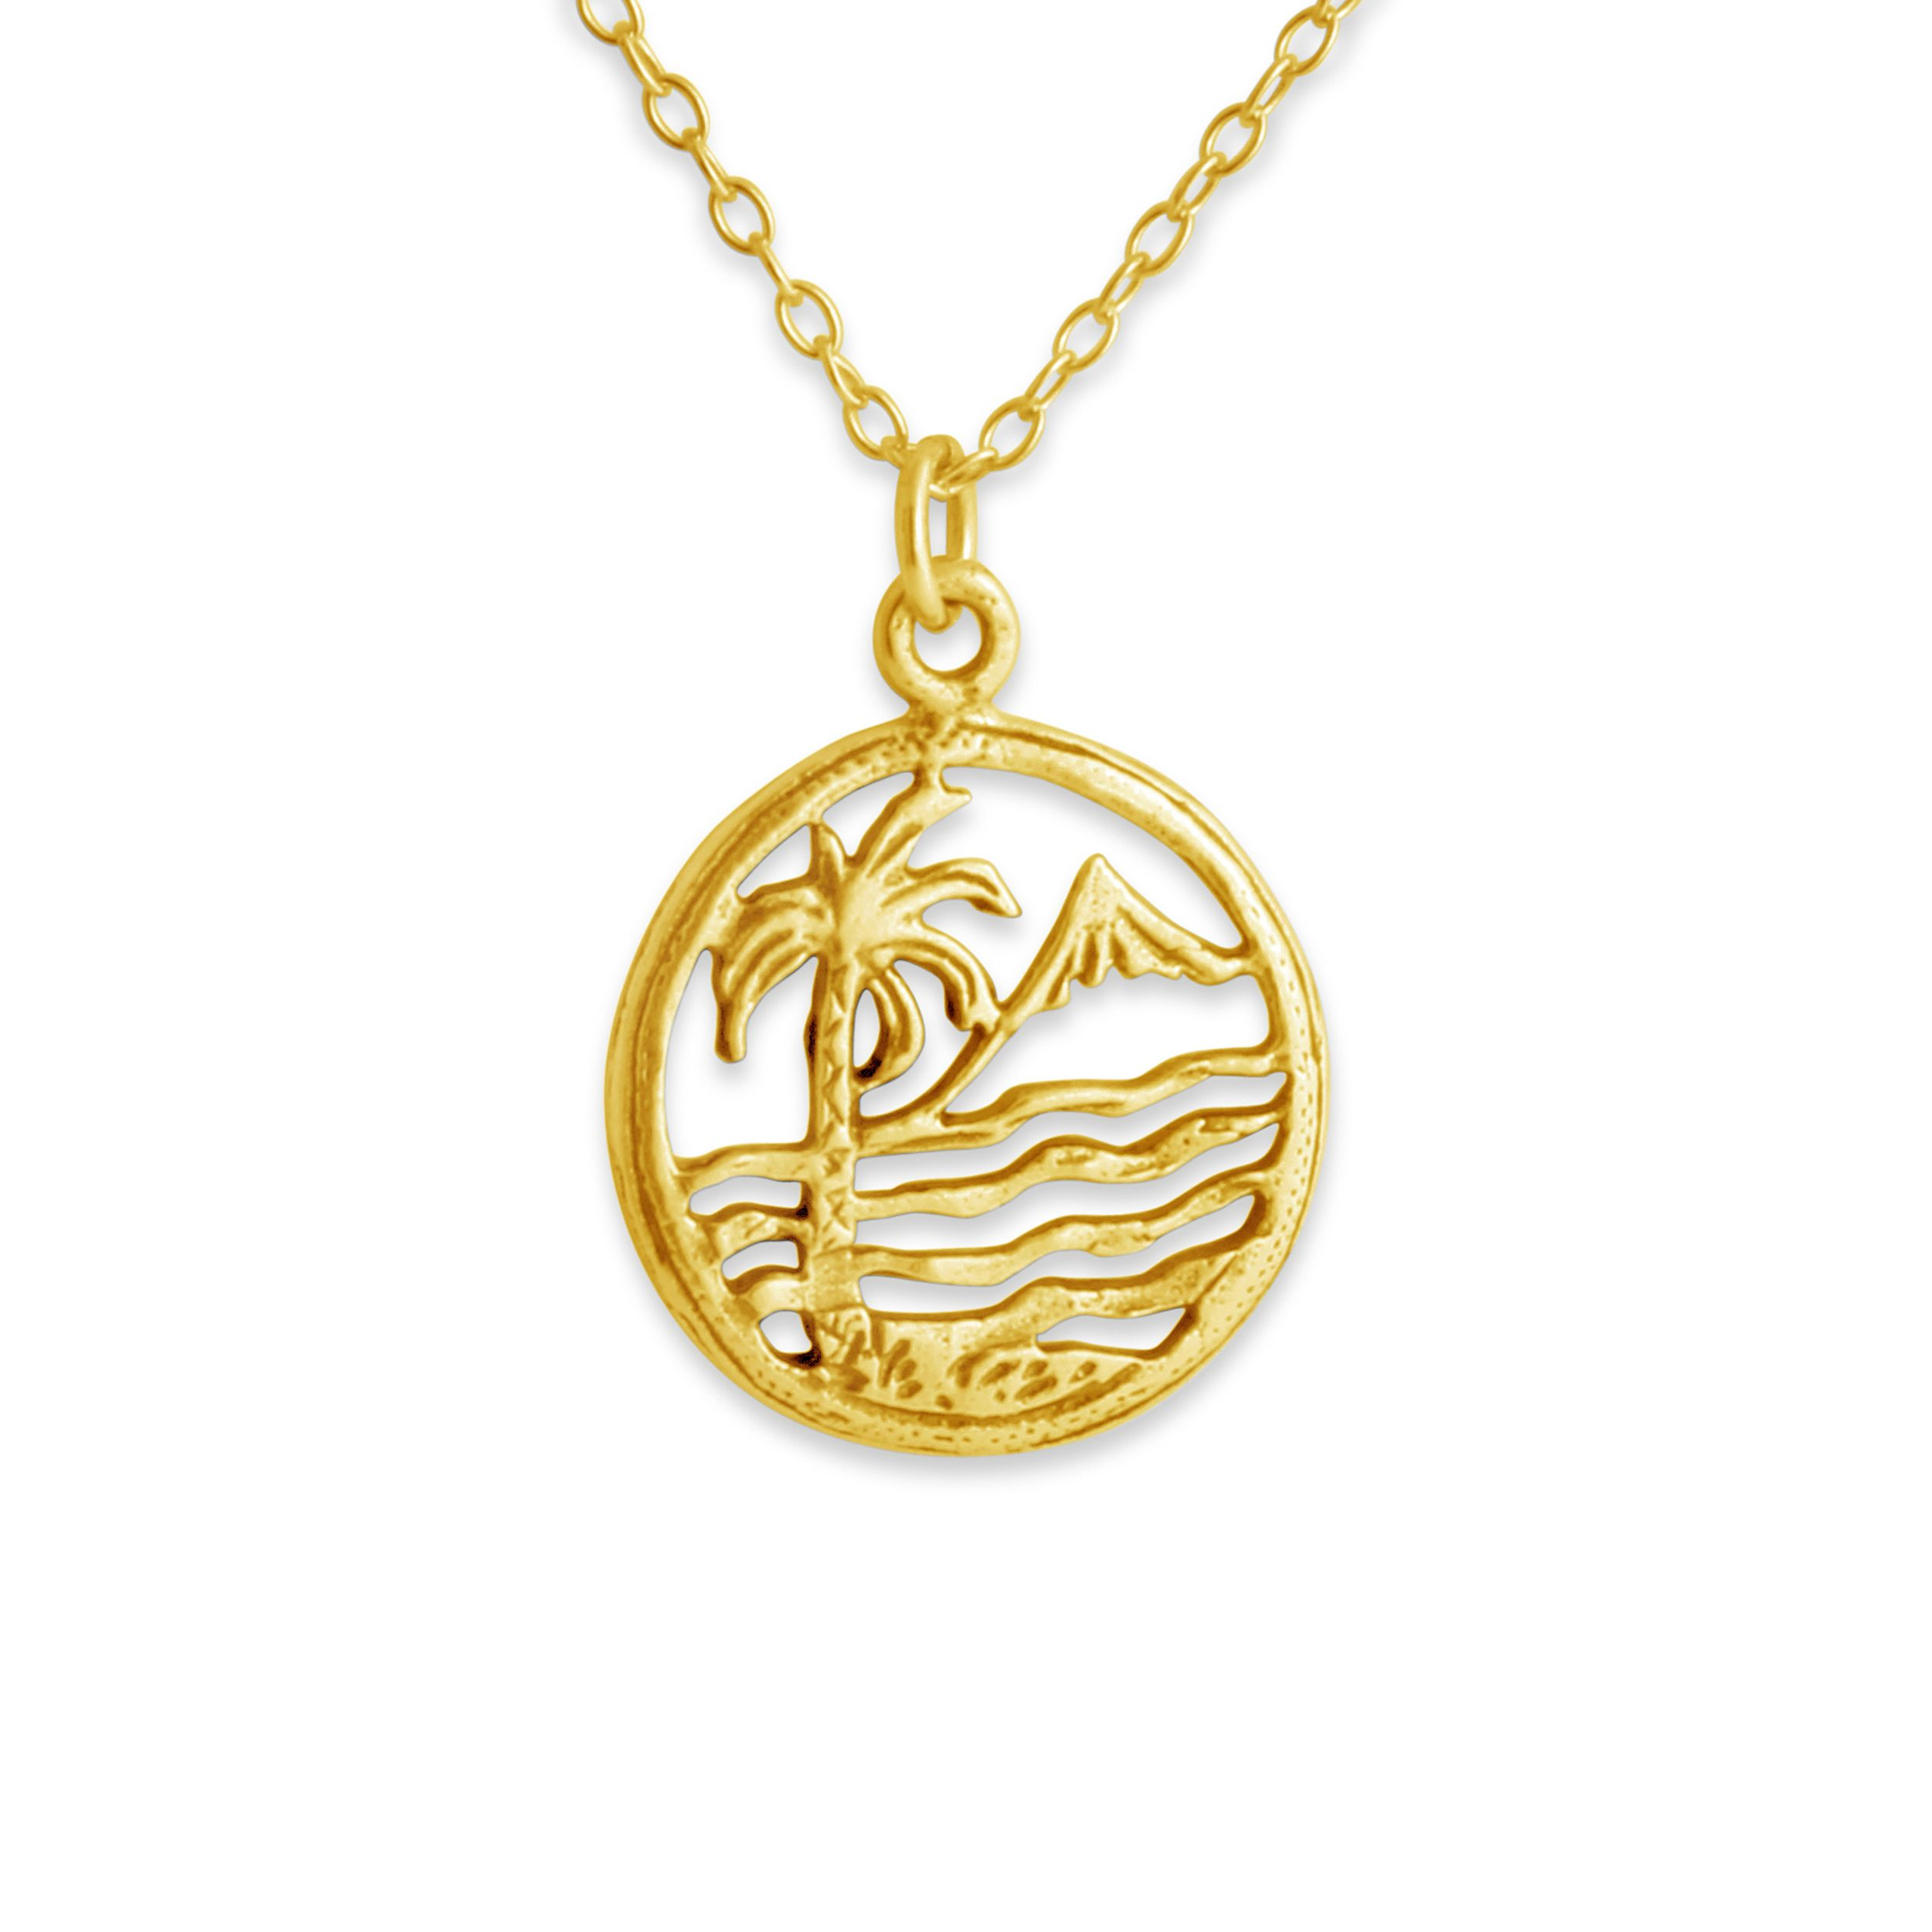 memories necklace cheeky medallion newkickstarterimage product ltd